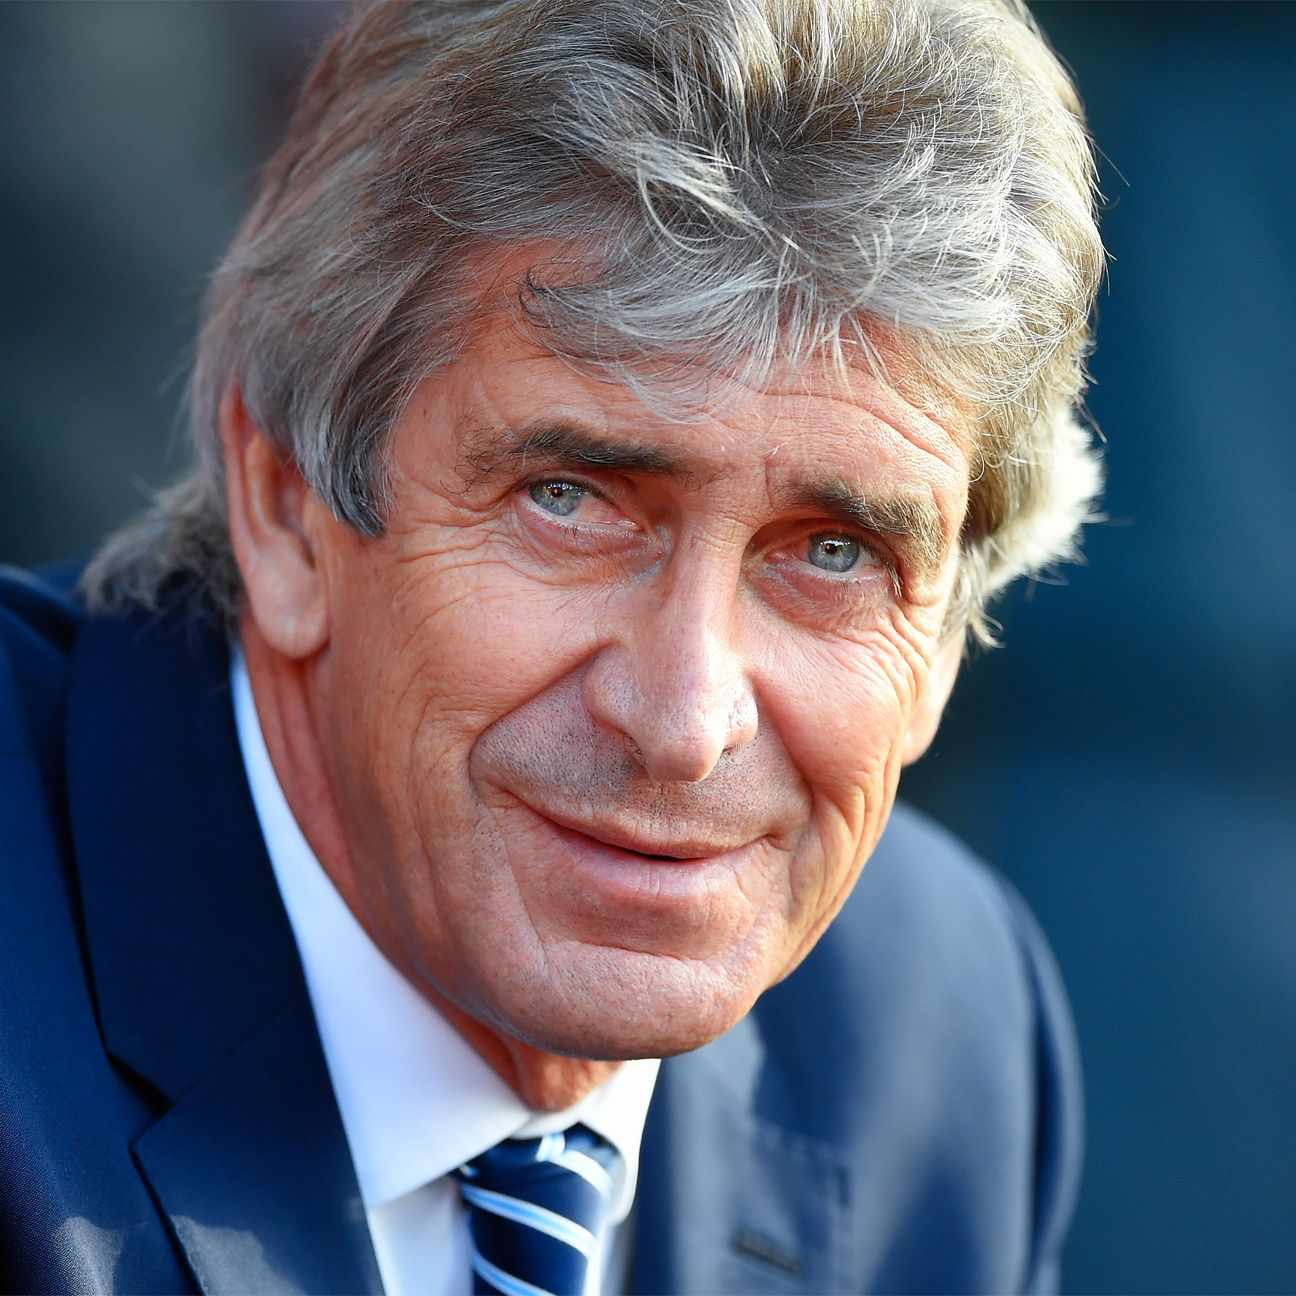 Manuel Pellegrini's Manchester City are unbeaten in their last six matches.